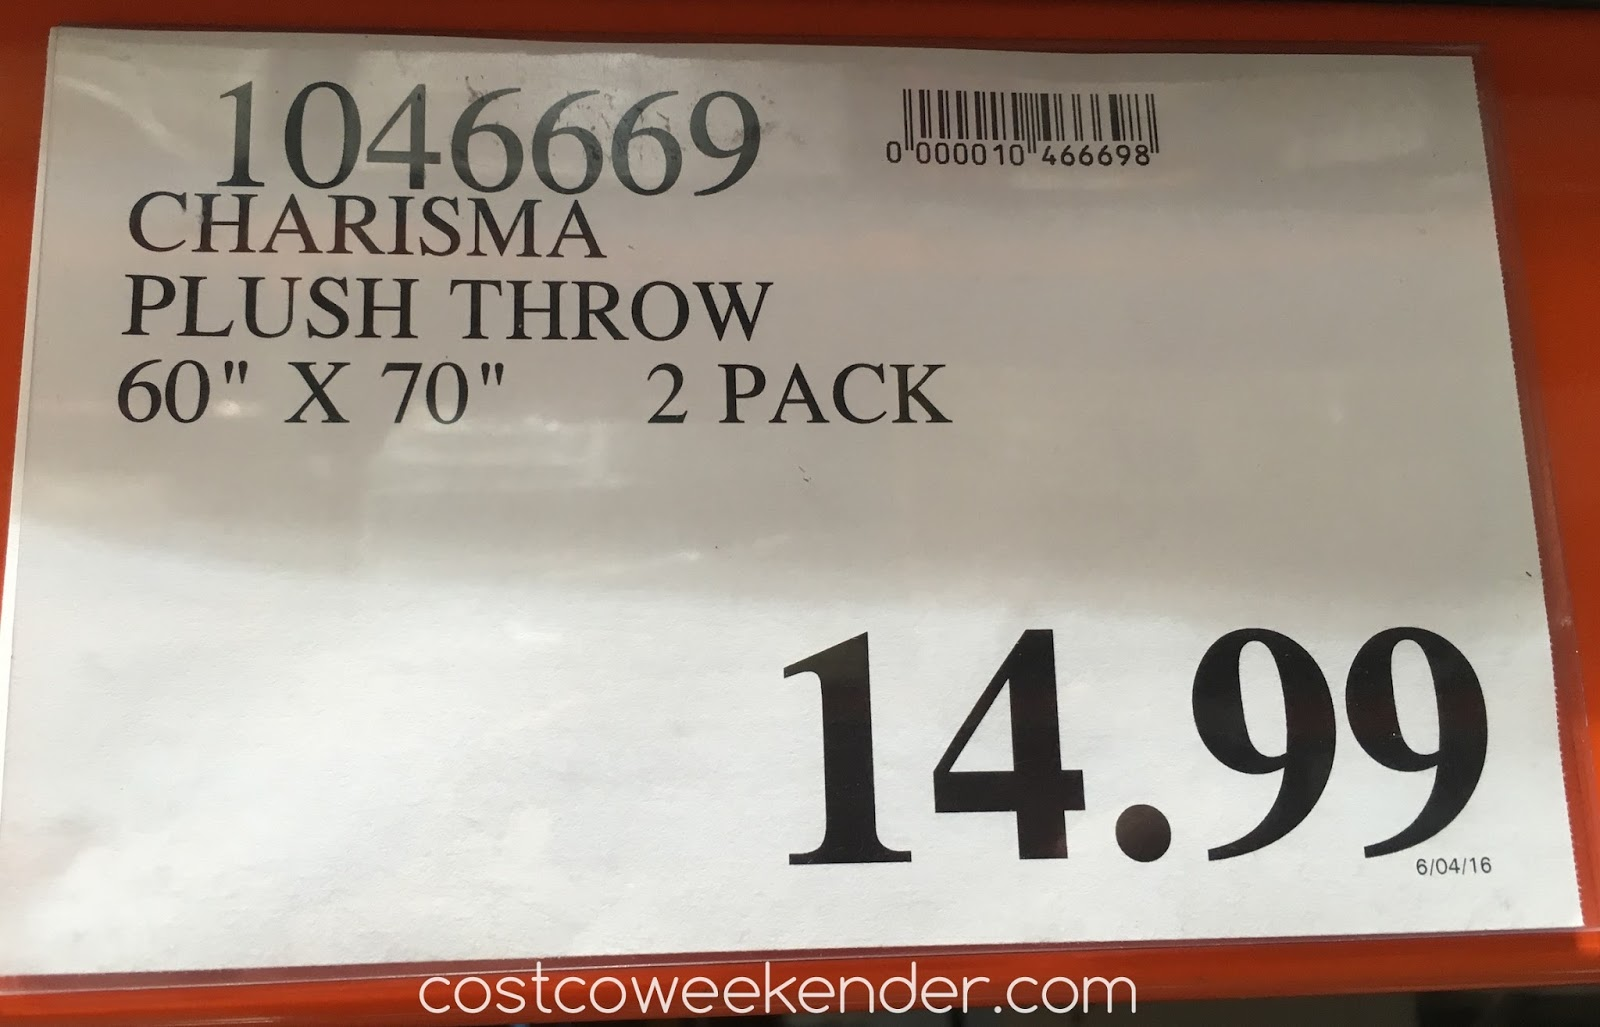 Costco 1046669 - Deal for the Charisma Velvet Plush Throw at Costco